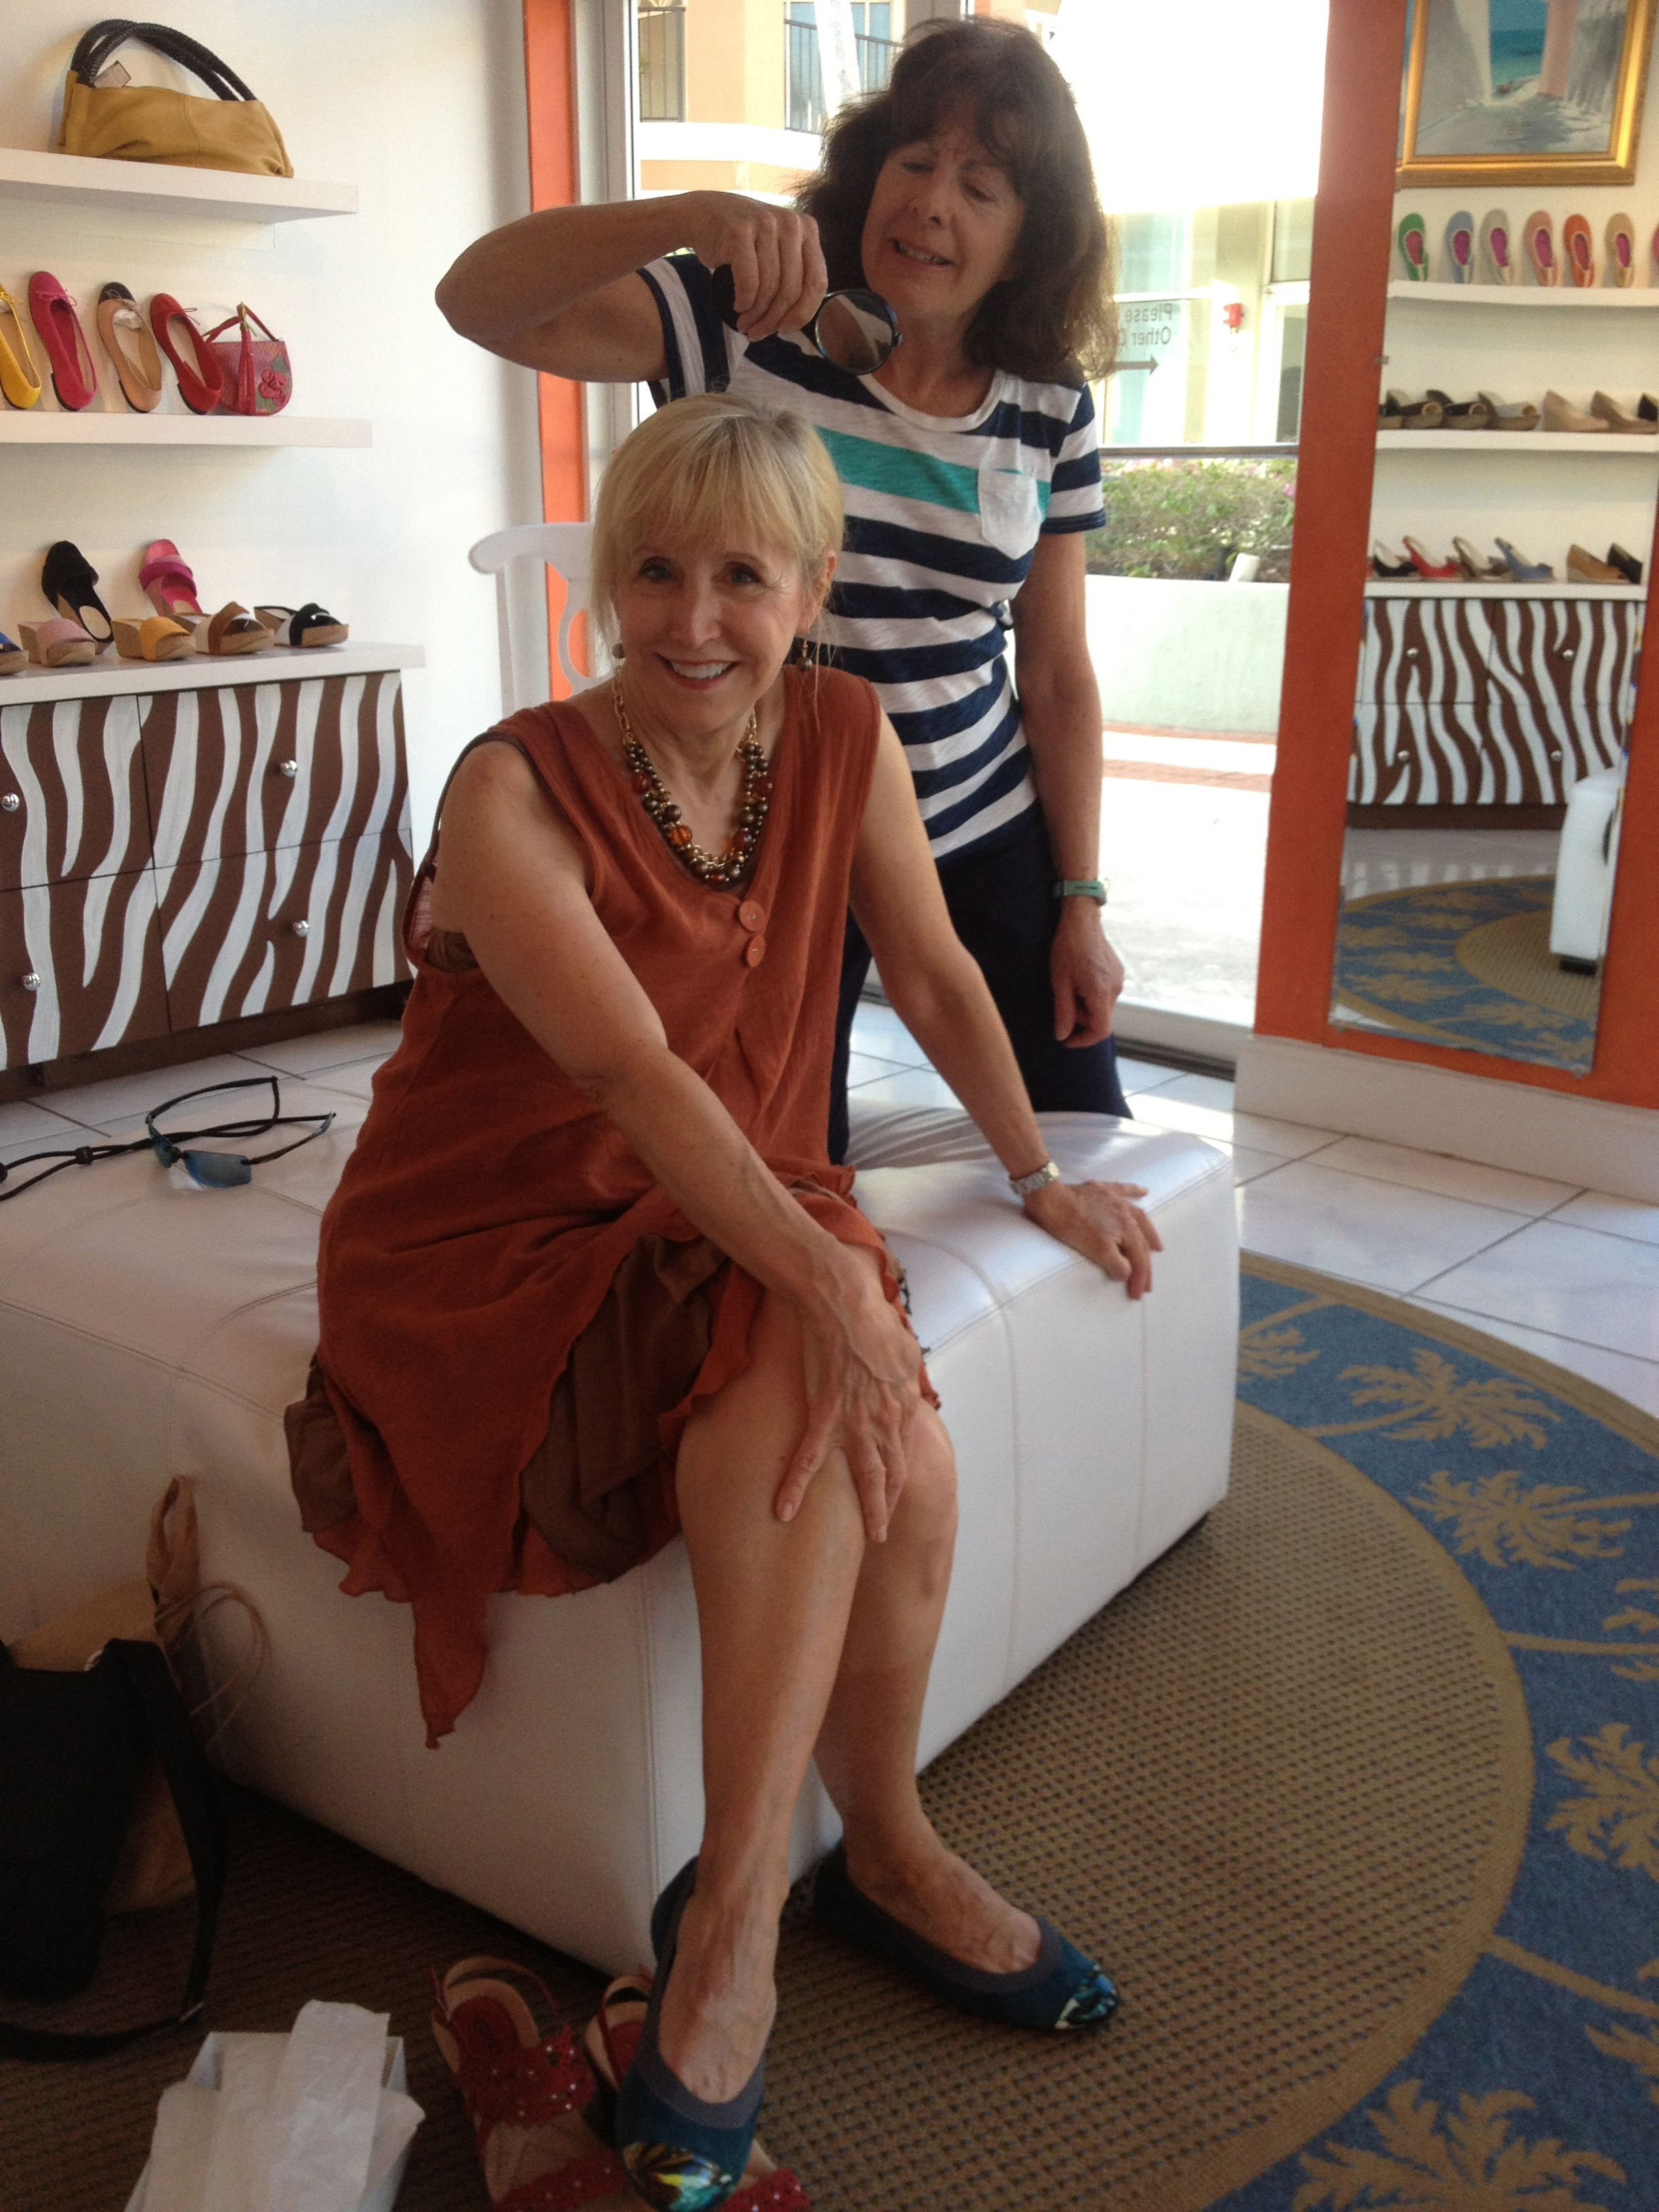 Blonde woman and brunette woman in shoe store in Florida